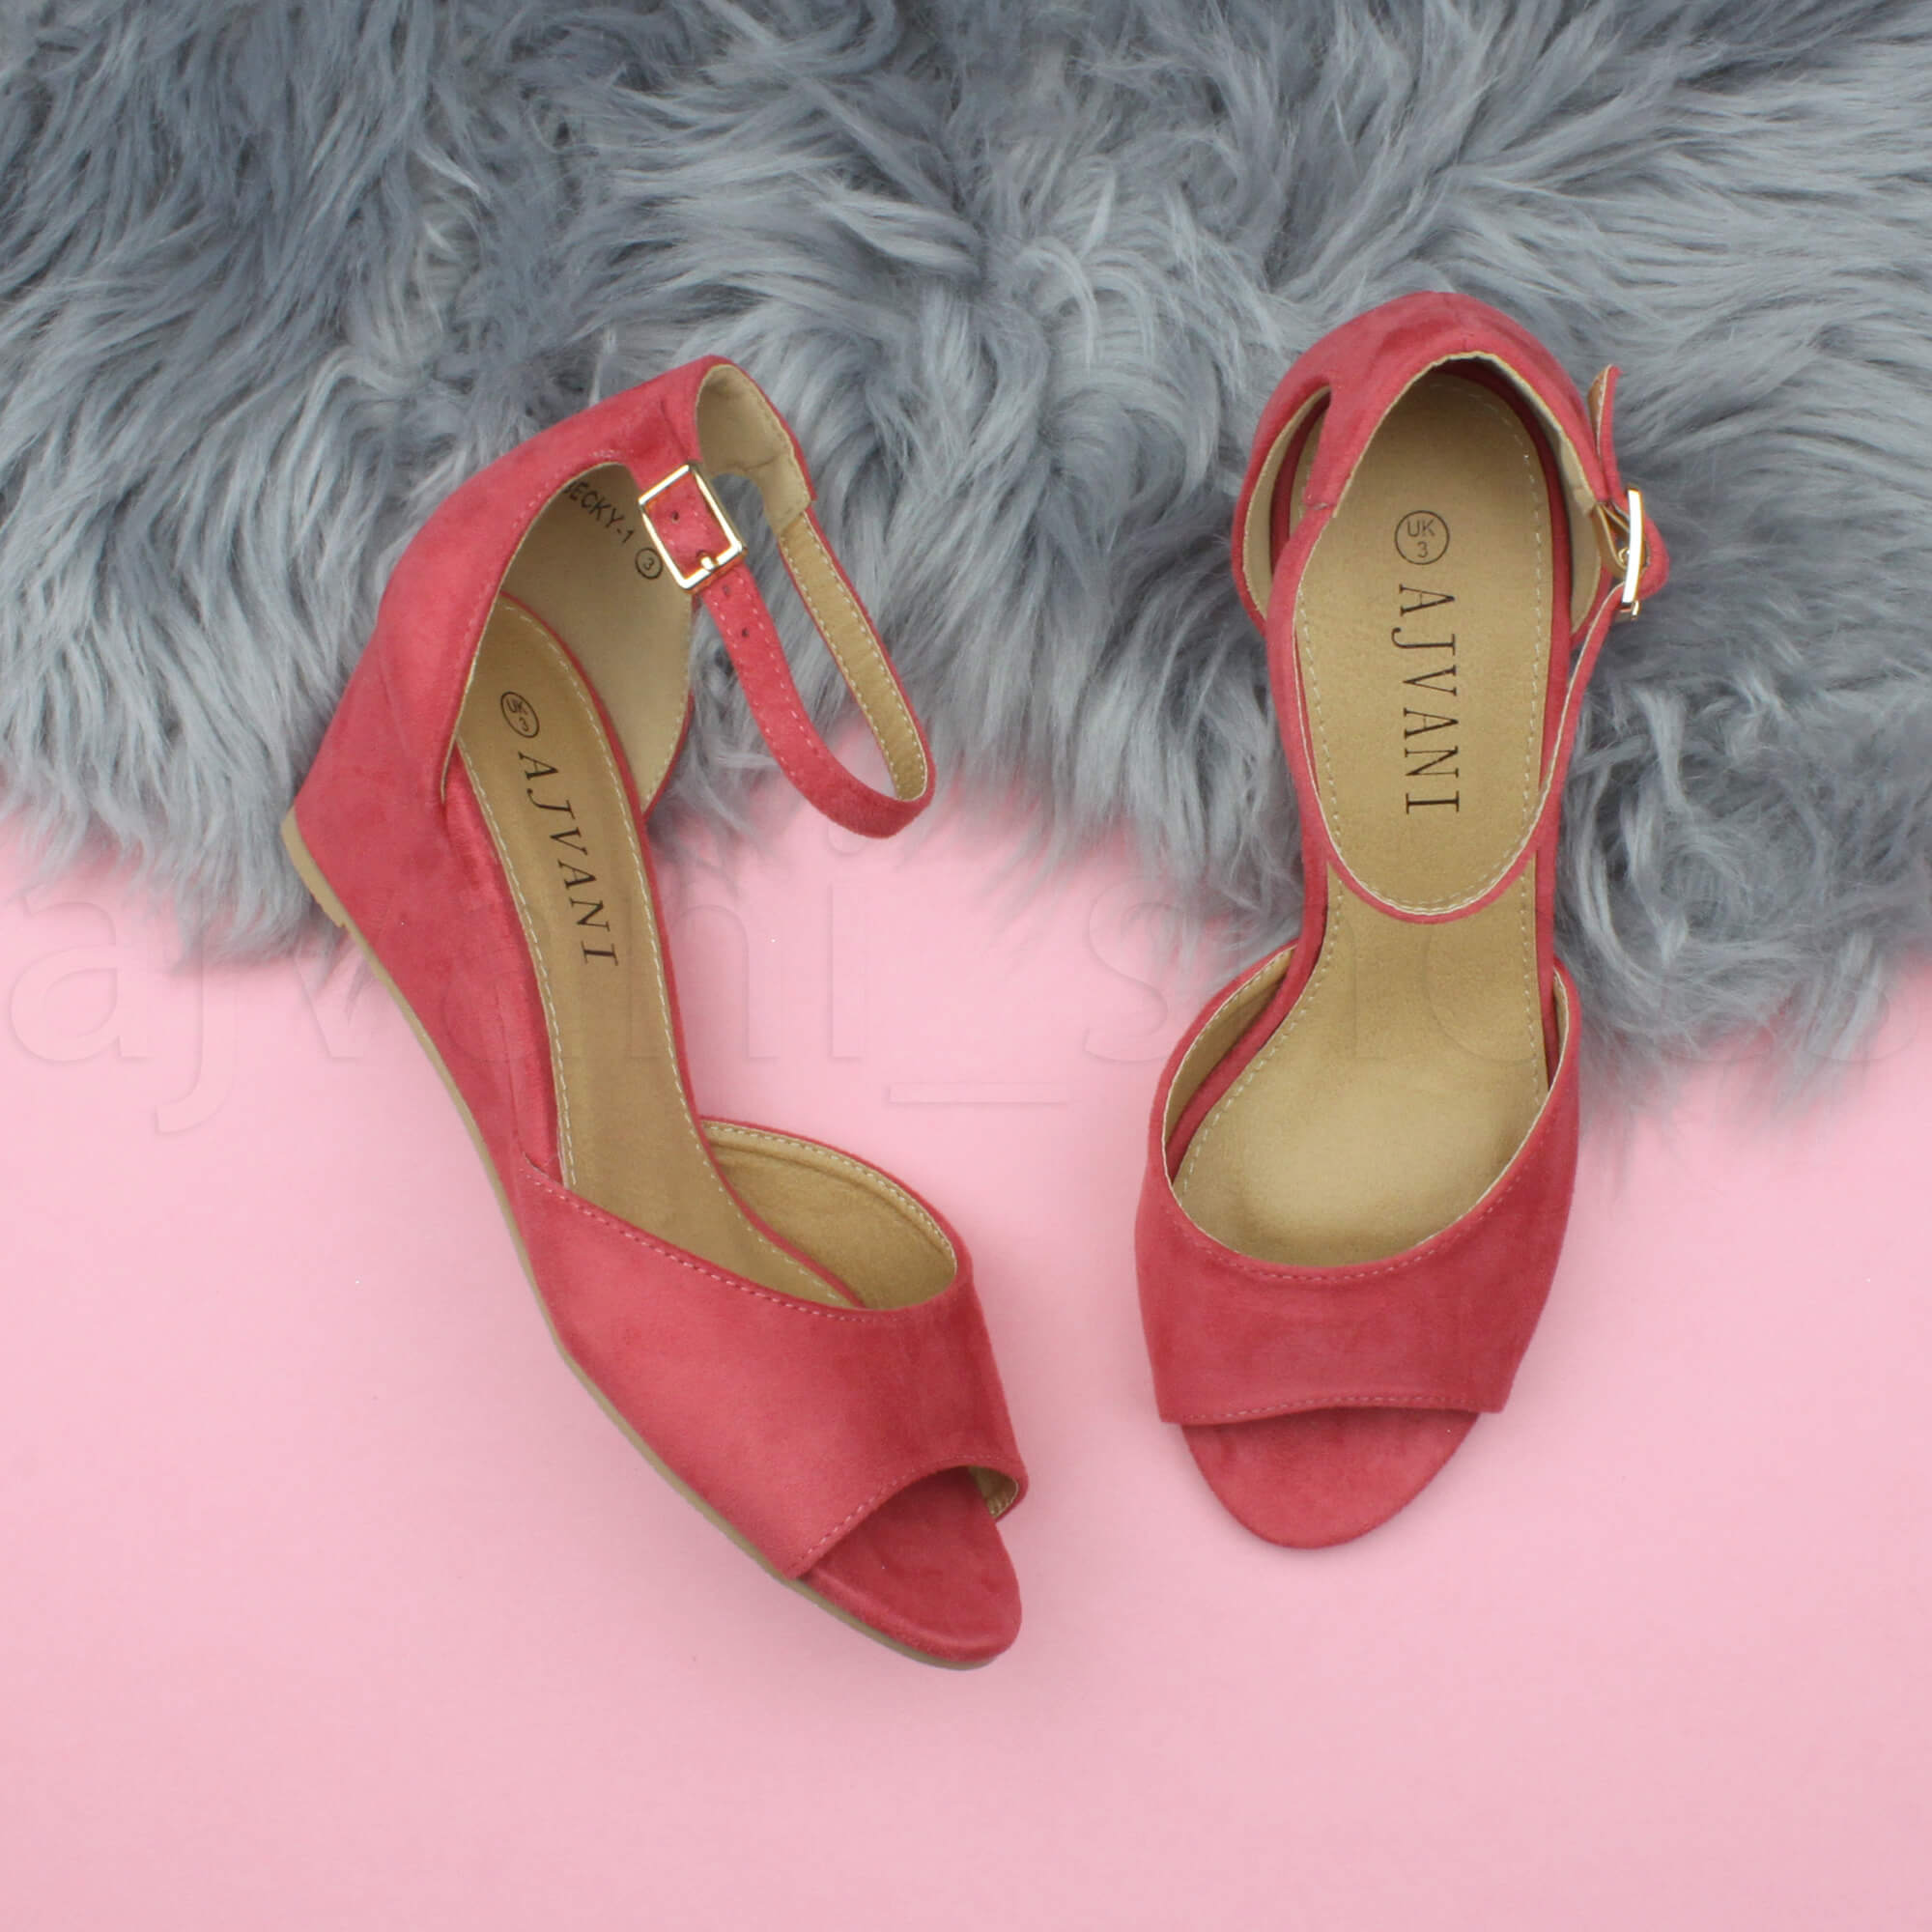 WOMENS-LADIES-LOW-MID-WEDGE-HEEL-ANKLE-STRAP-SMART-CASUAL-EVENING-SANDALS-SIZE thumbnail 37